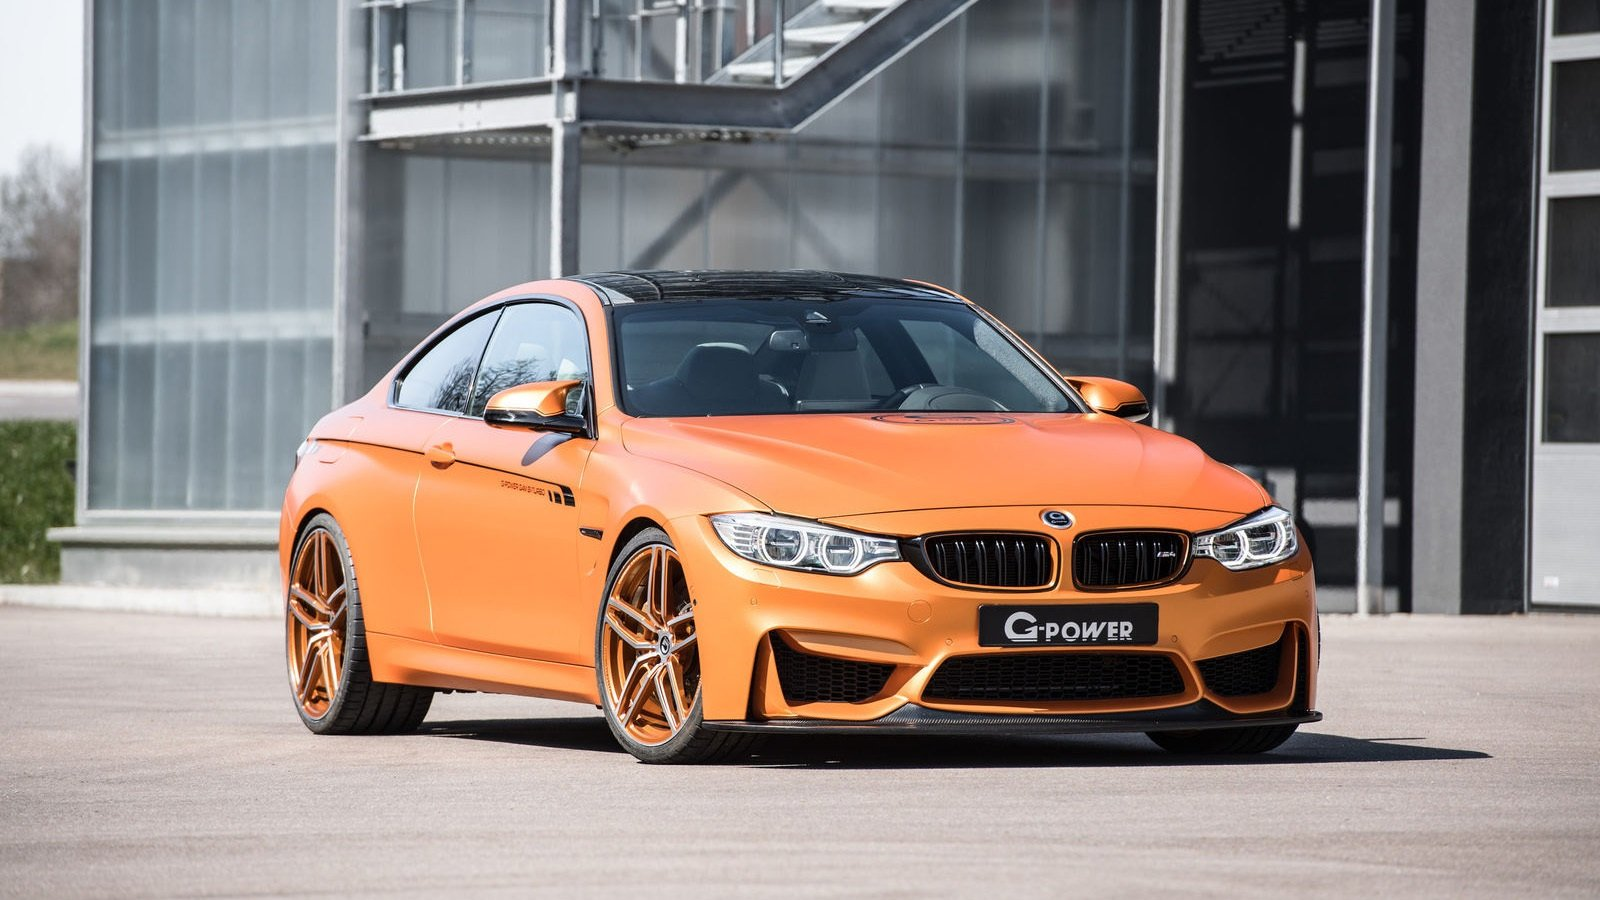 2017 bmw m4 by g power review top speed. Black Bedroom Furniture Sets. Home Design Ideas